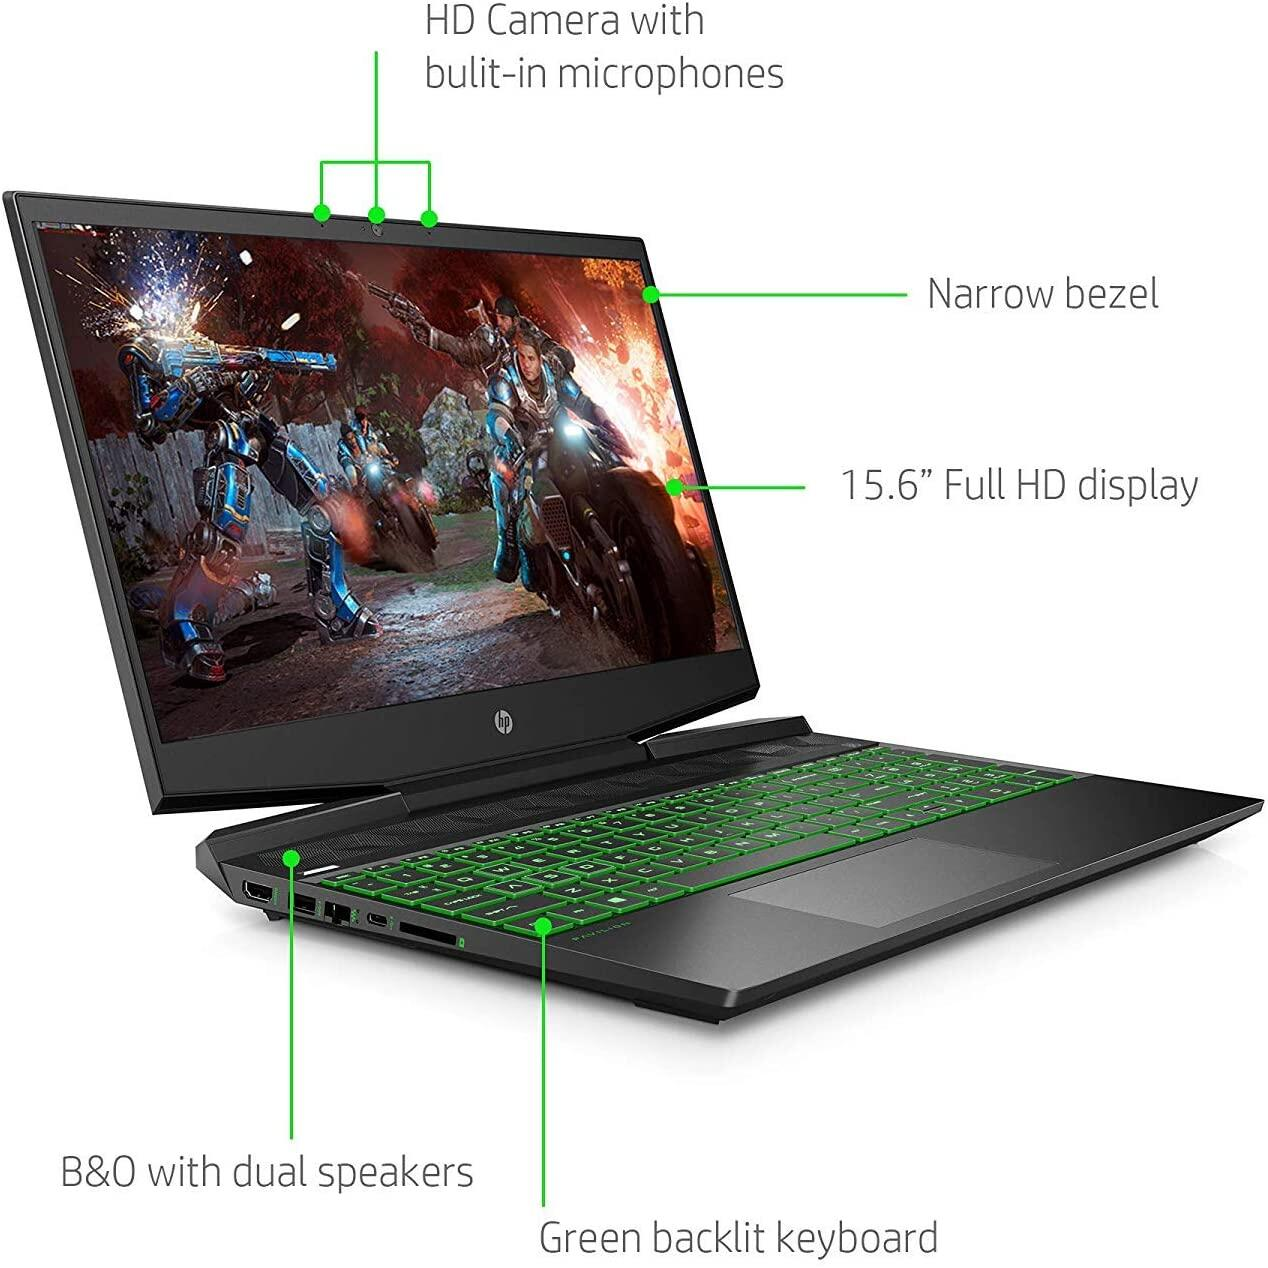 HP Pavilion Gaming Laptop 15.6 IPS FHD, Core i5-9300H up to 4.10 GHz, GTX 1050, 12GB RAM, 256GB SSD+1TB HDD, Backlit, USB-C (DP 1.4), RJ-45 LAN, Wi-Fi 5, Webcam, Win 10, Sea of Thieves Malaysia